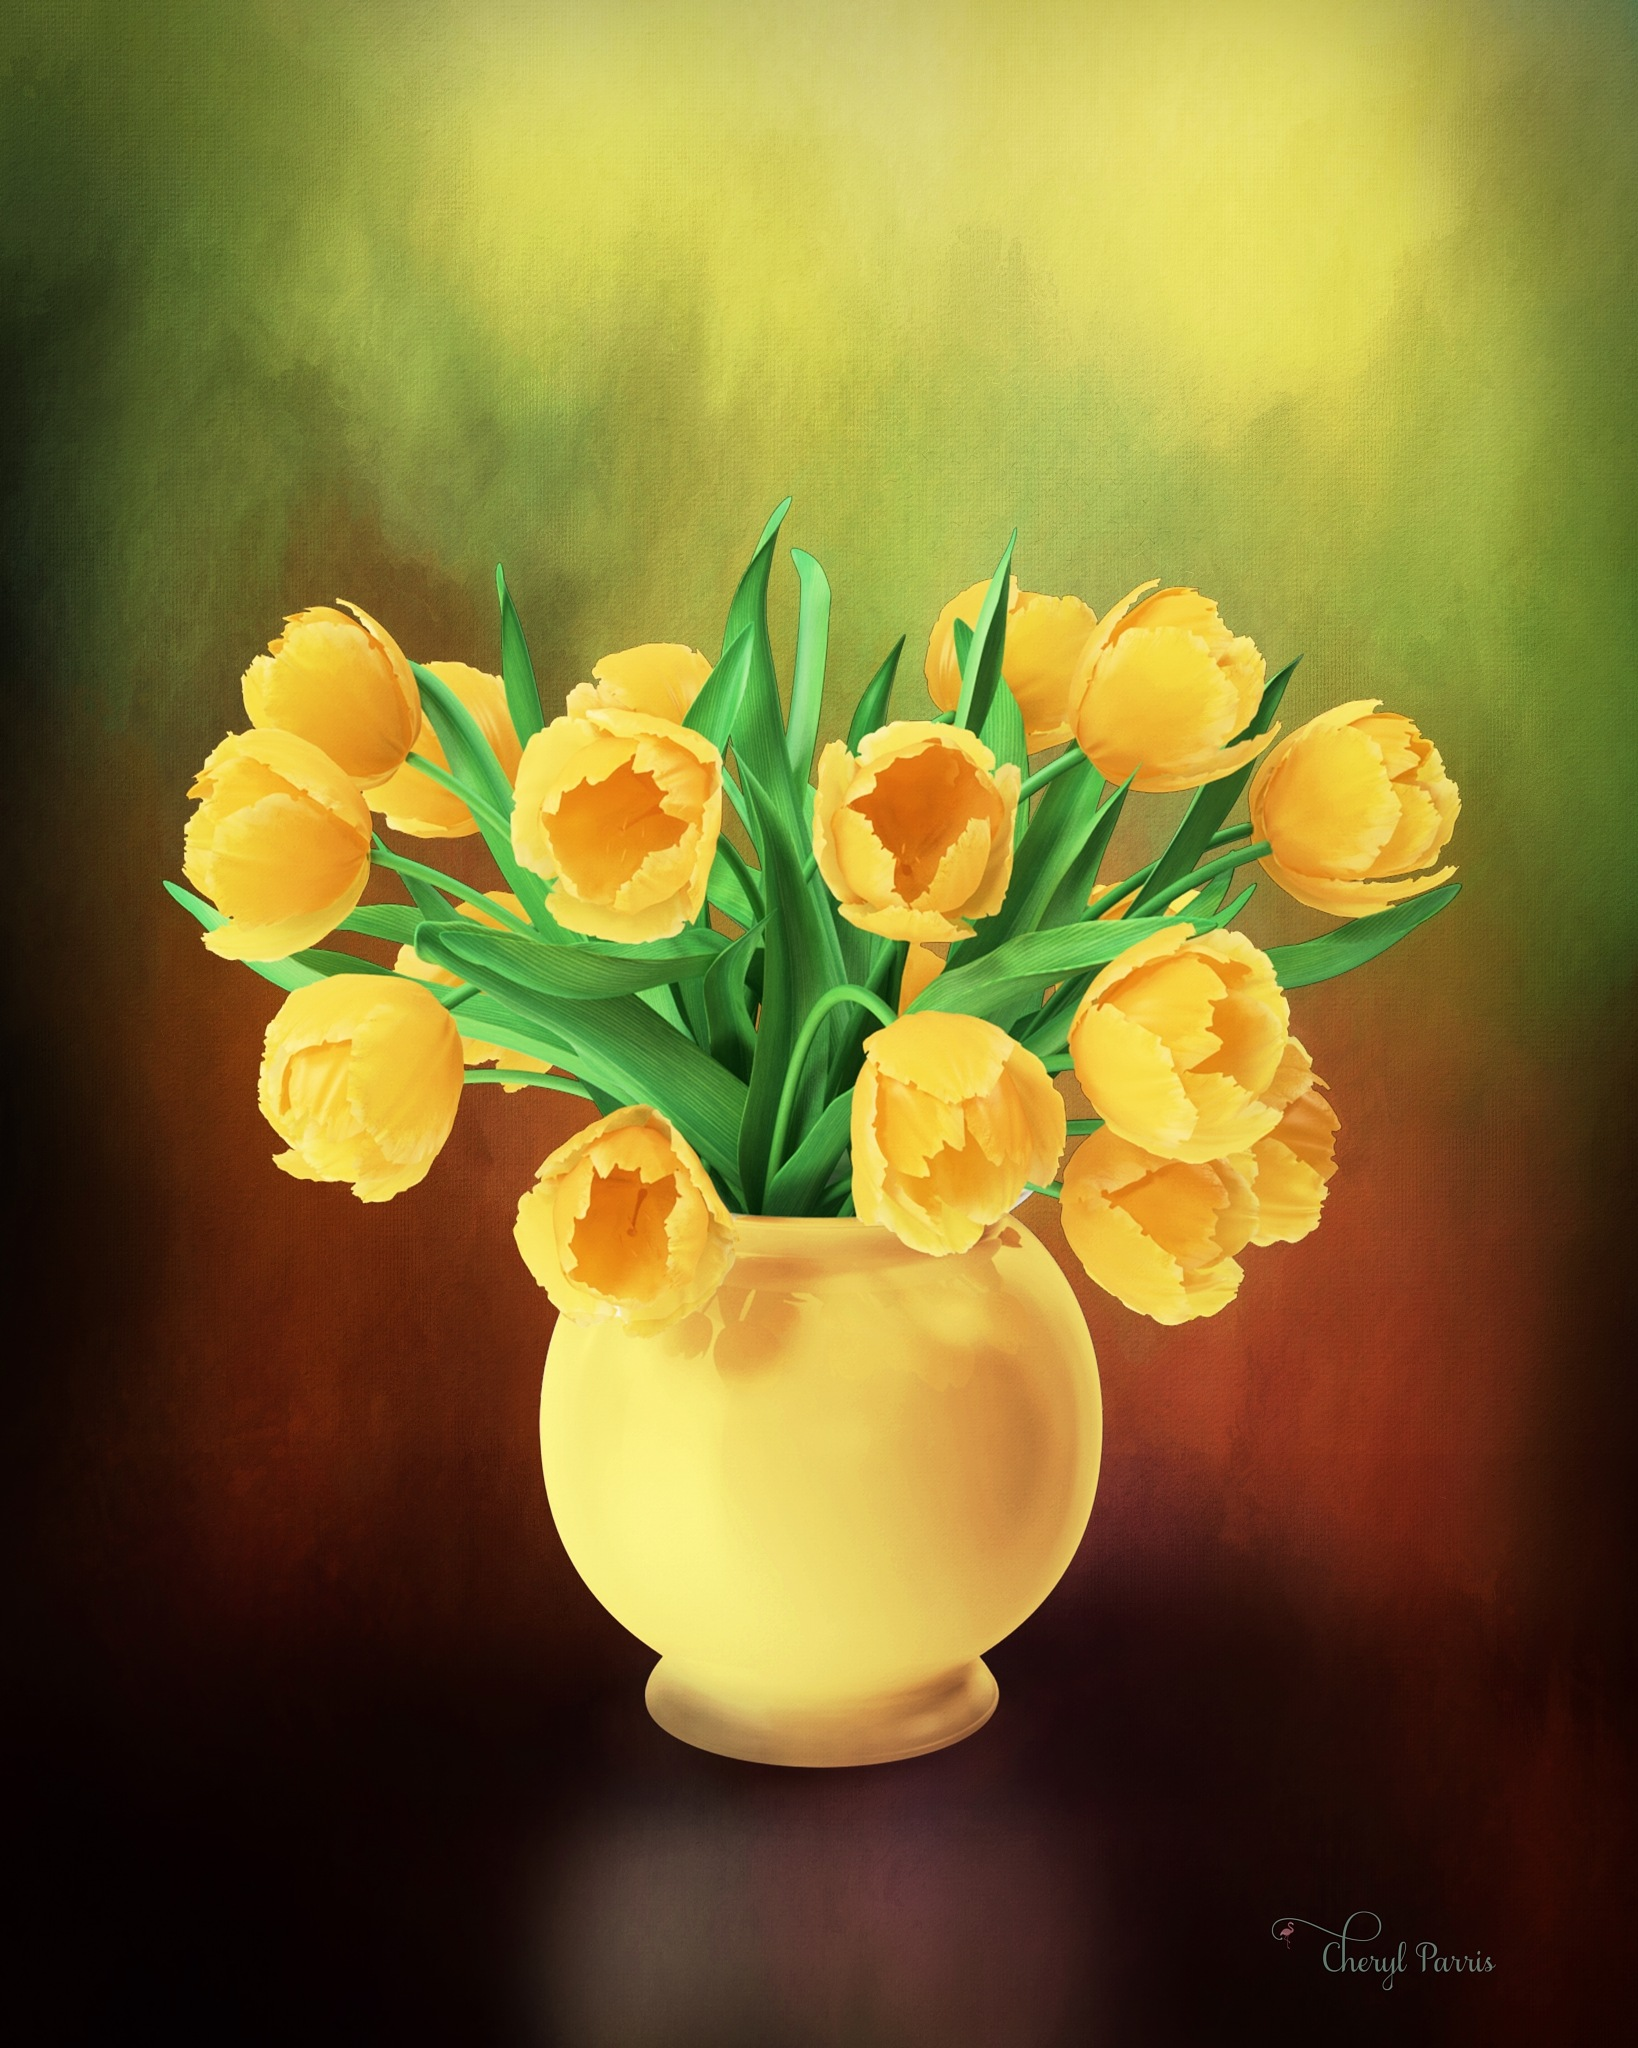 Yellow Tulips in a Vase by Cherbeni